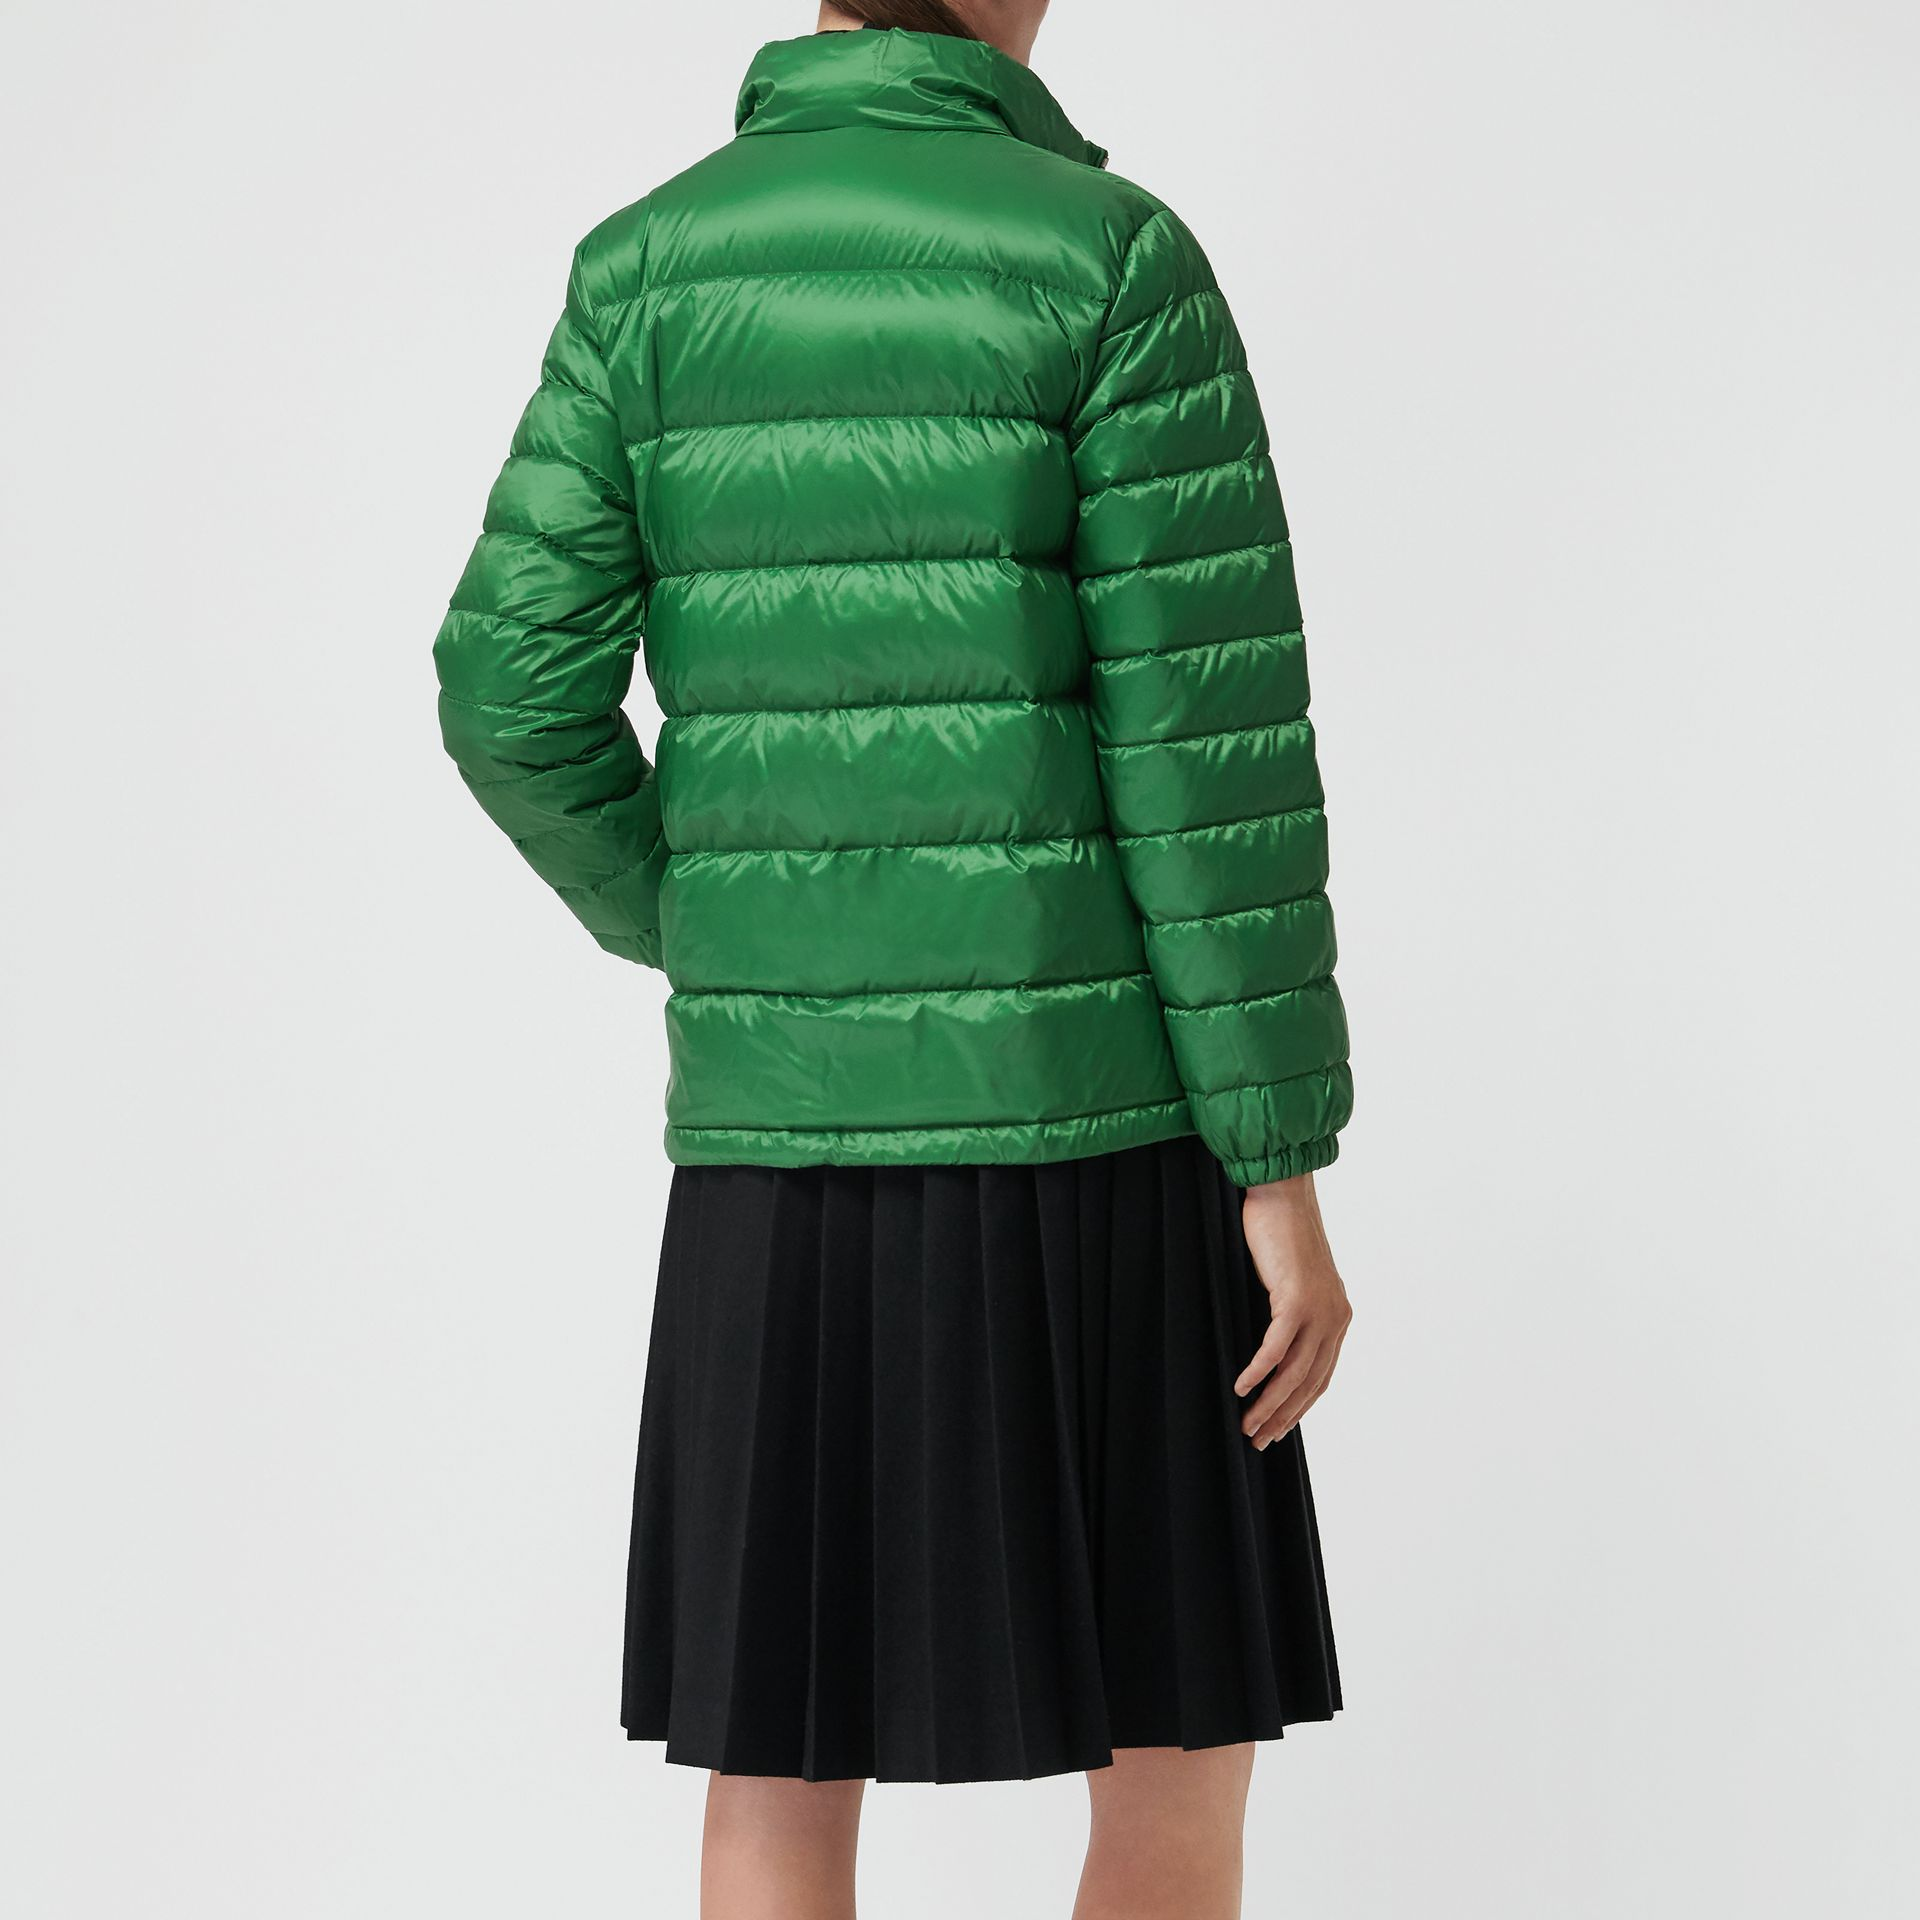 Down-filled Puffer Jacket in Emerald Green - Women | Burberry United Kingdom - gallery image 2